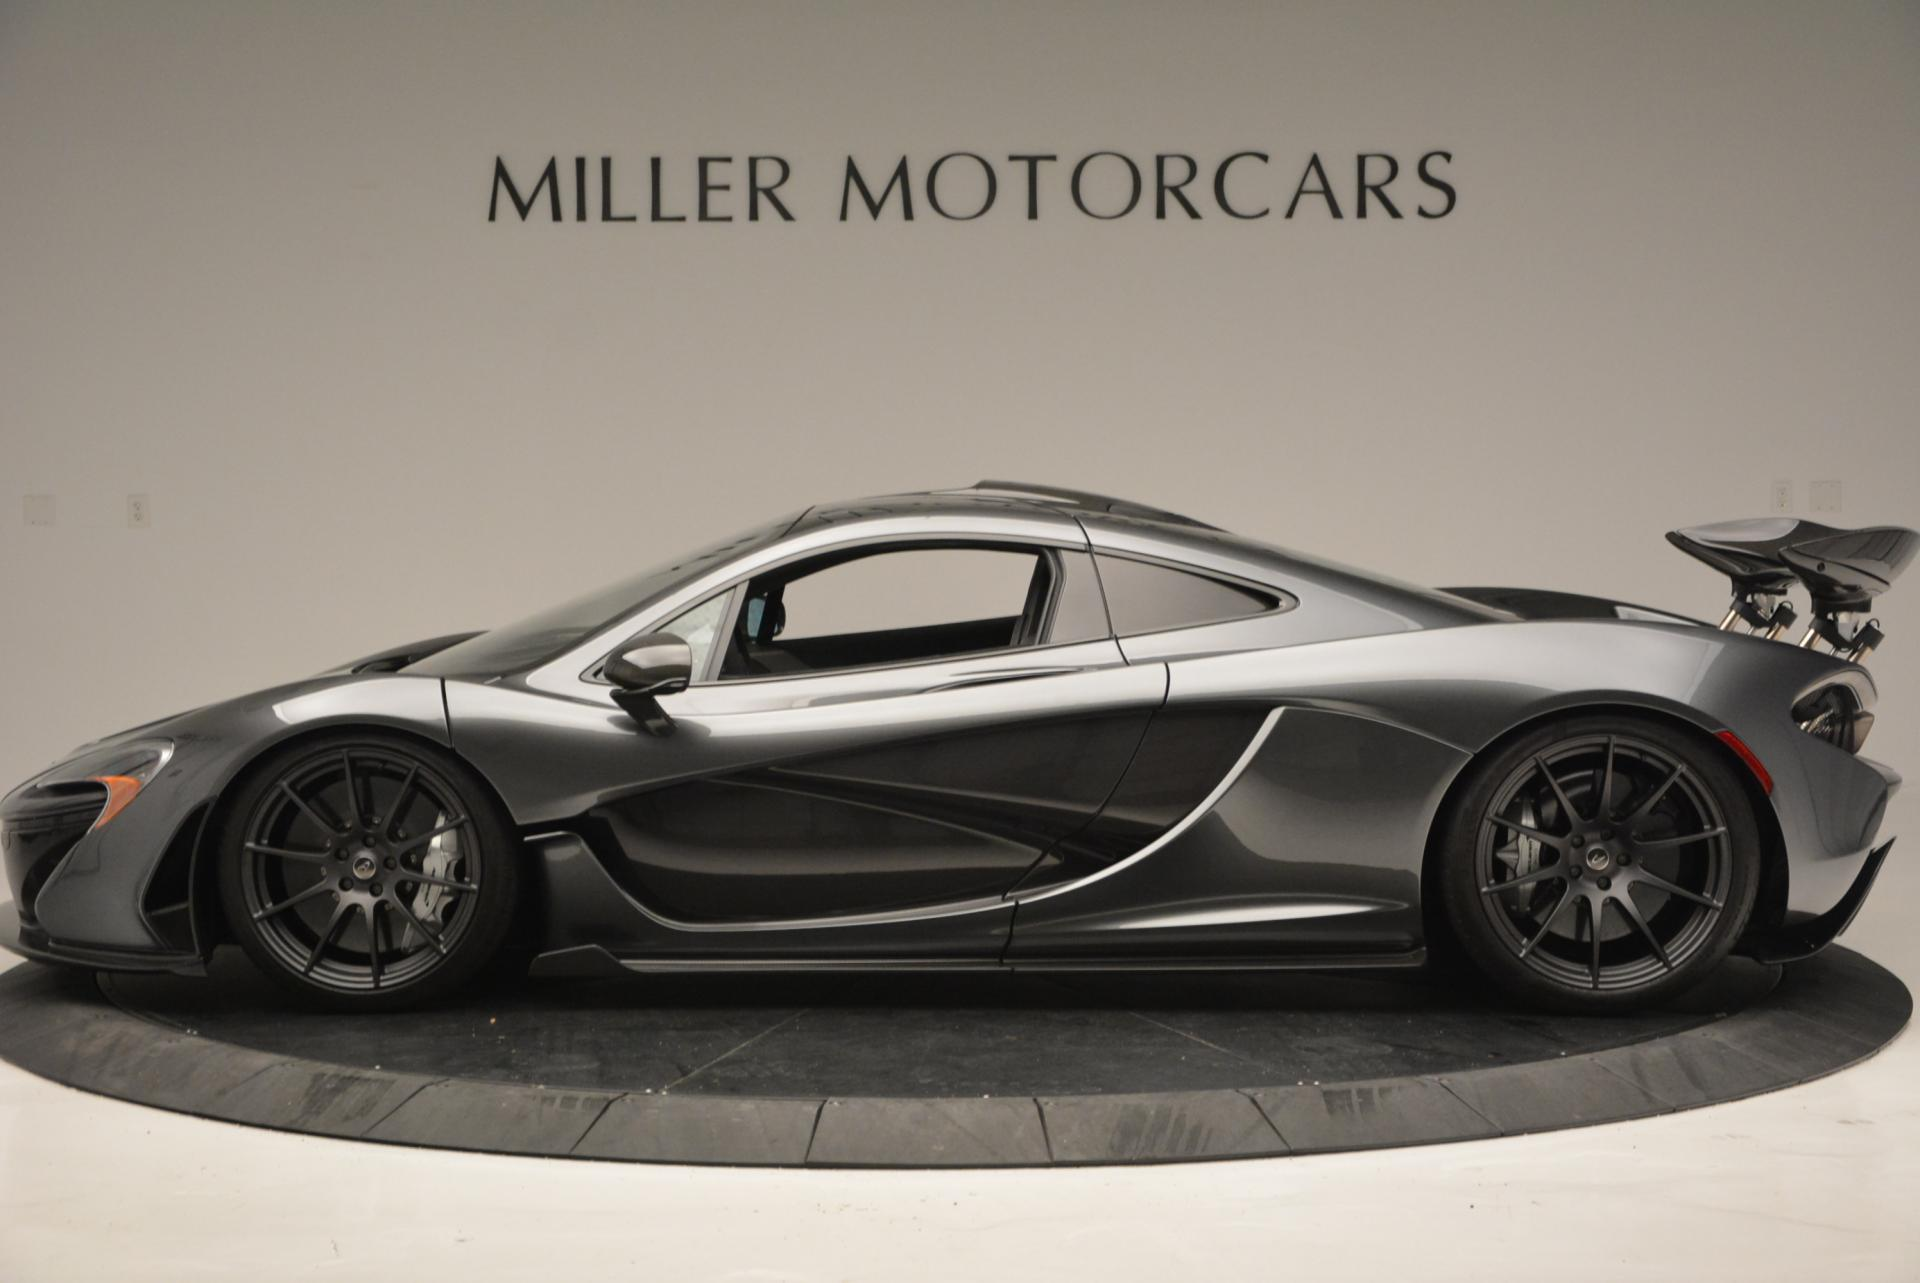 Used 2014 McLaren P1 Coupe For Sale In Greenwich, CT. Alfa Romeo of Greenwich, 3100 513_p3